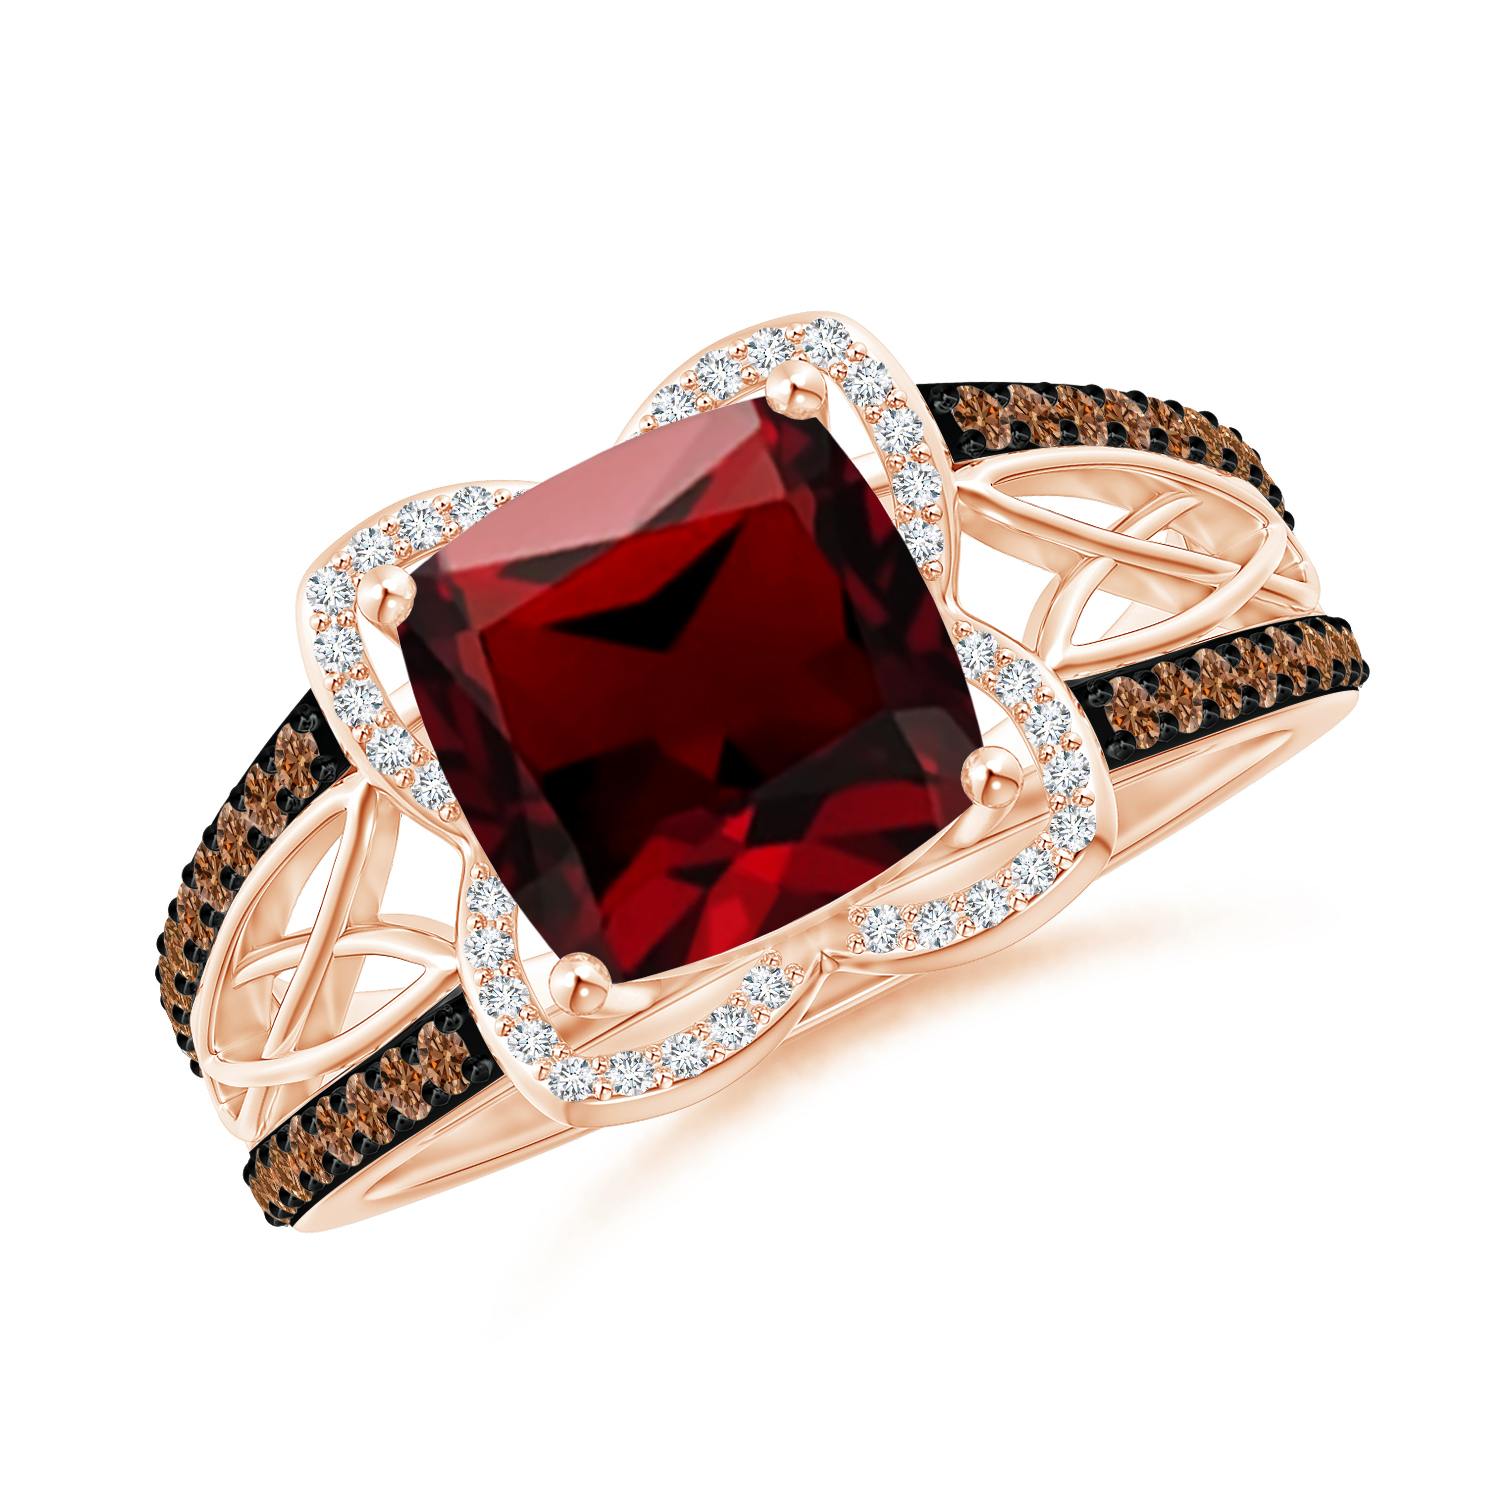 Cushion Garnet Celtic Knot Cocktail Ring - Angara.com